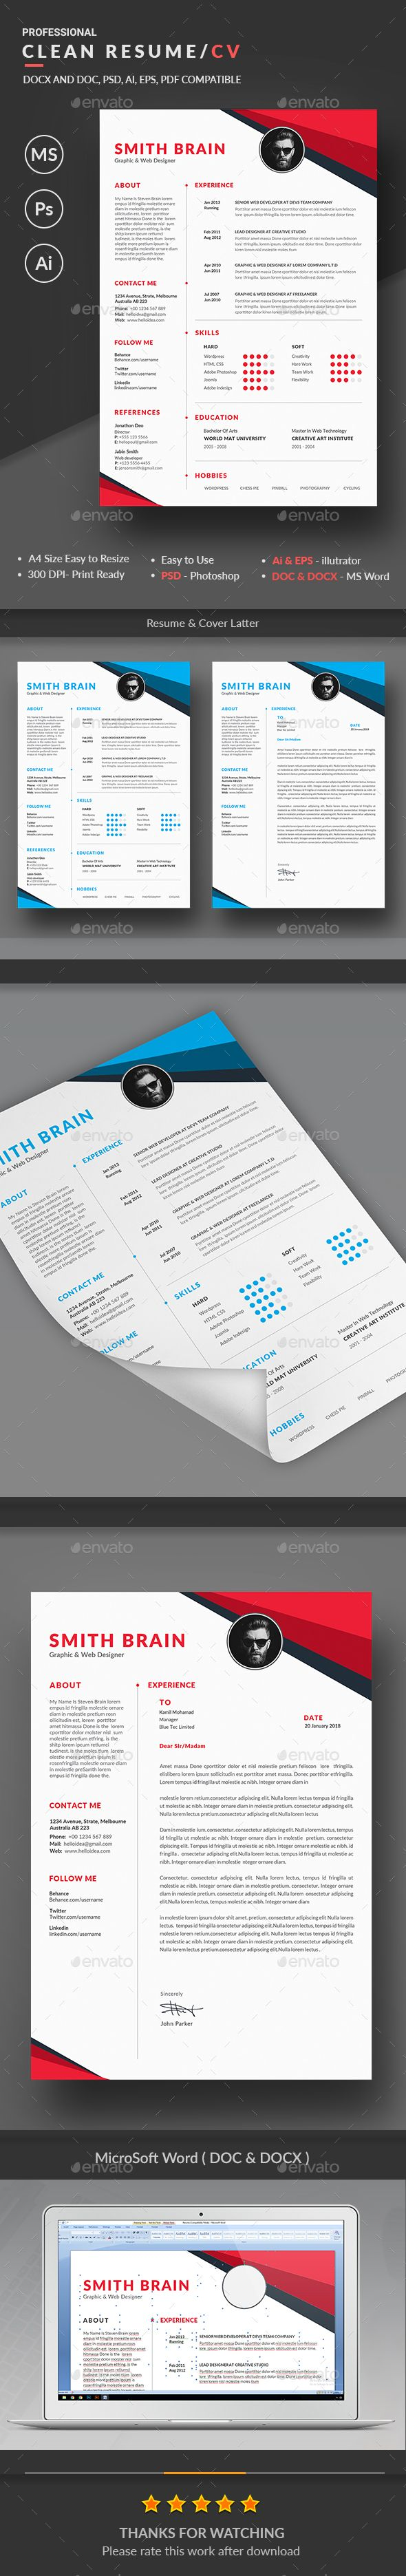 Resume Template PSD Vector EPS AI DOCX